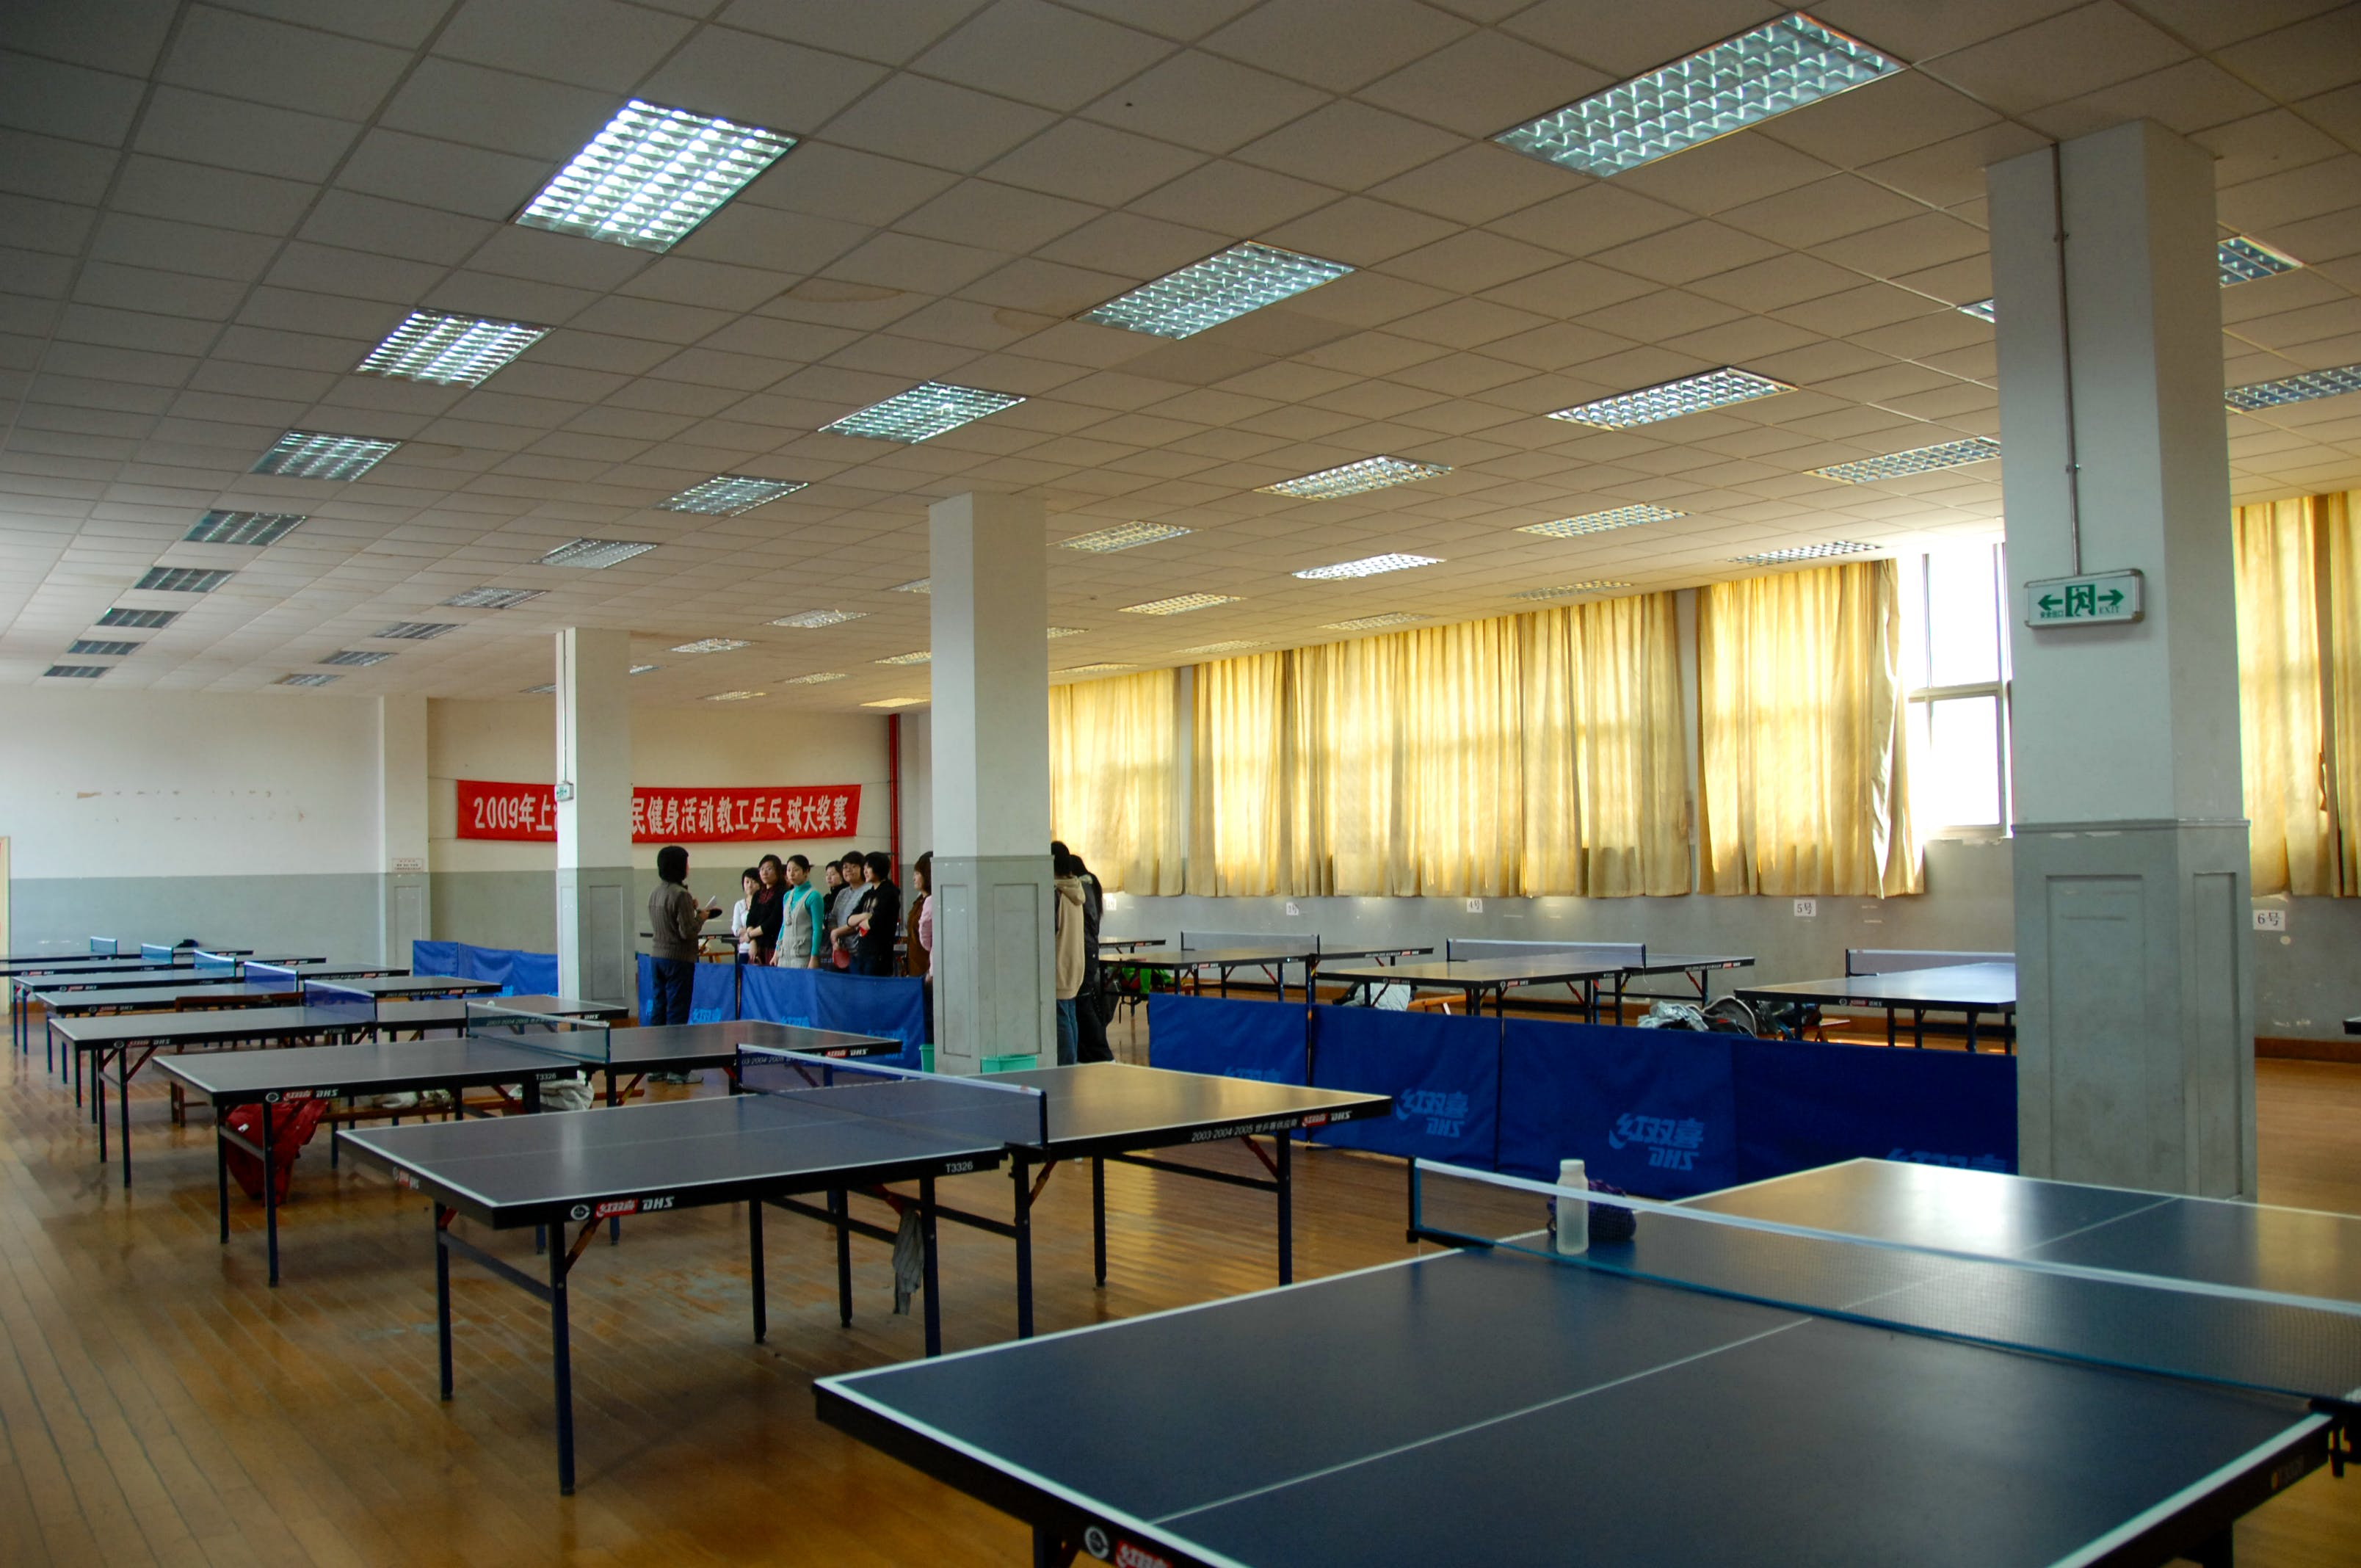 SHNU Pingpong (Table Tennis) Room of Xuhui Campus near West Gate